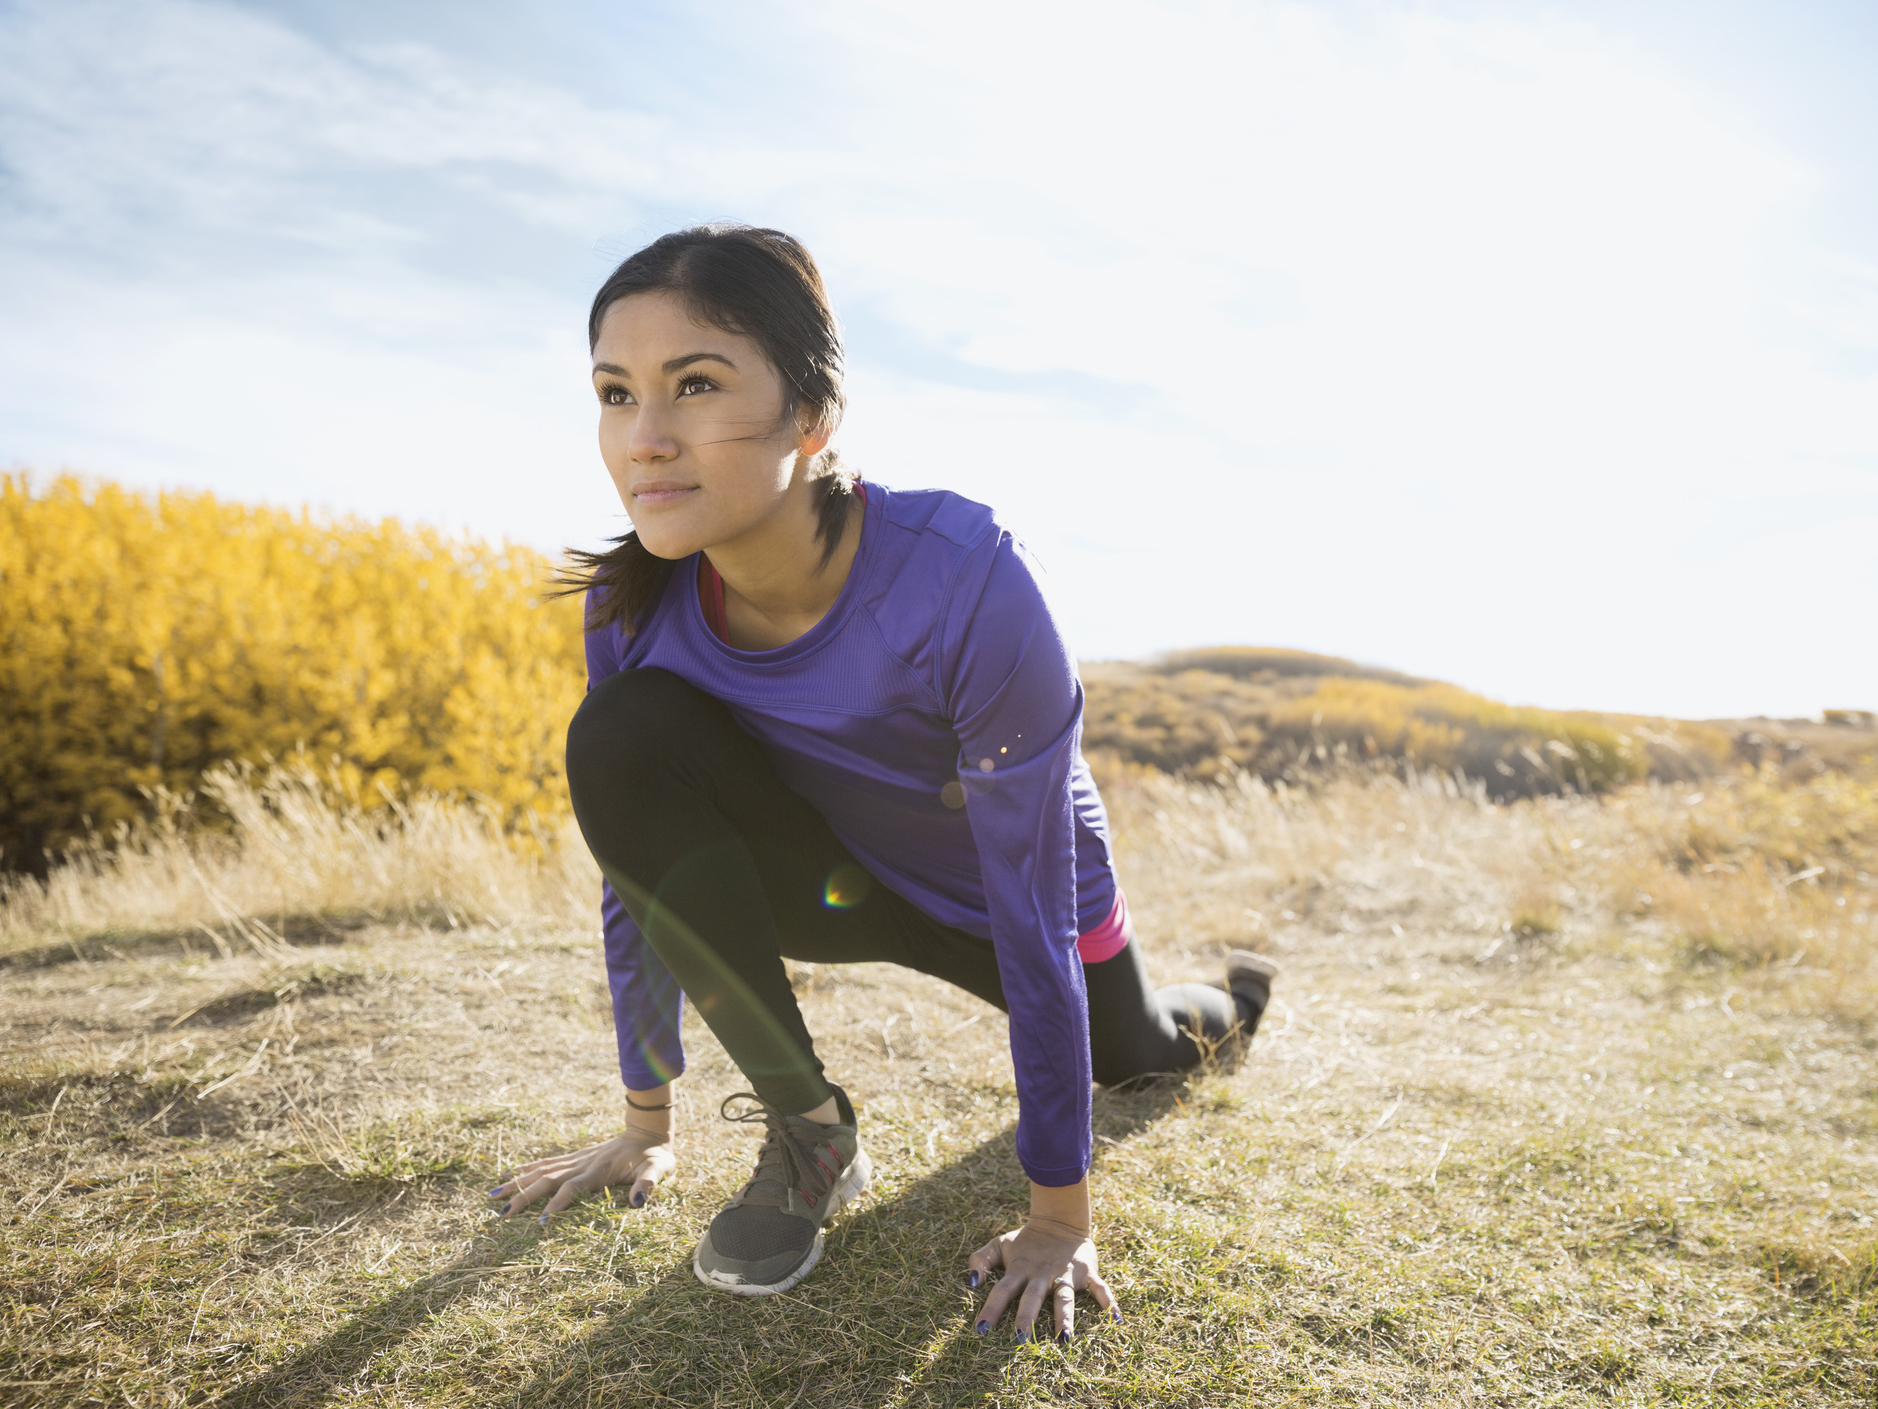 Is Running Good Or Bad For Your Health?